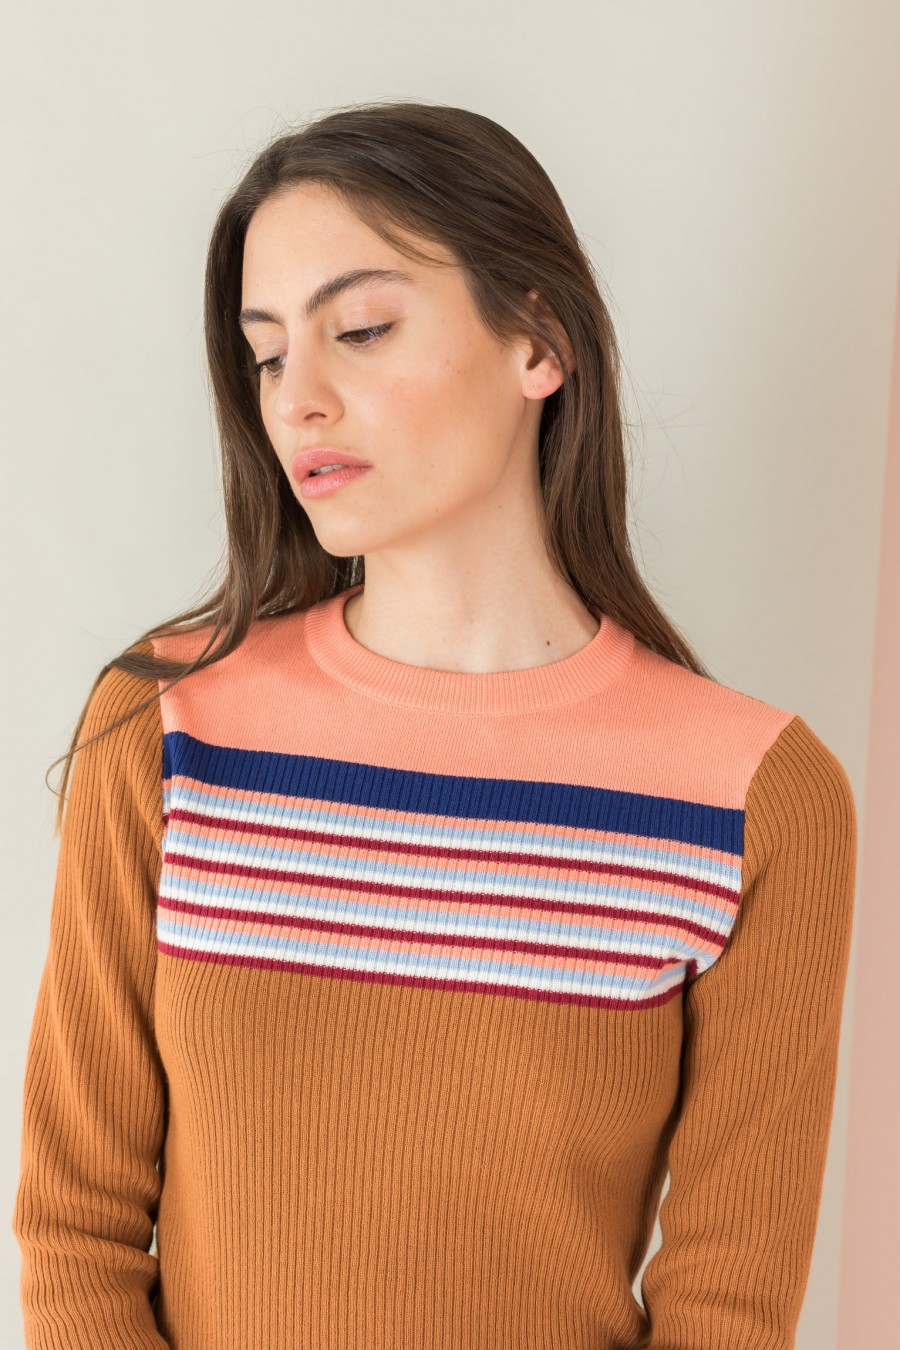 biscuit-colored sweater with striped yoke